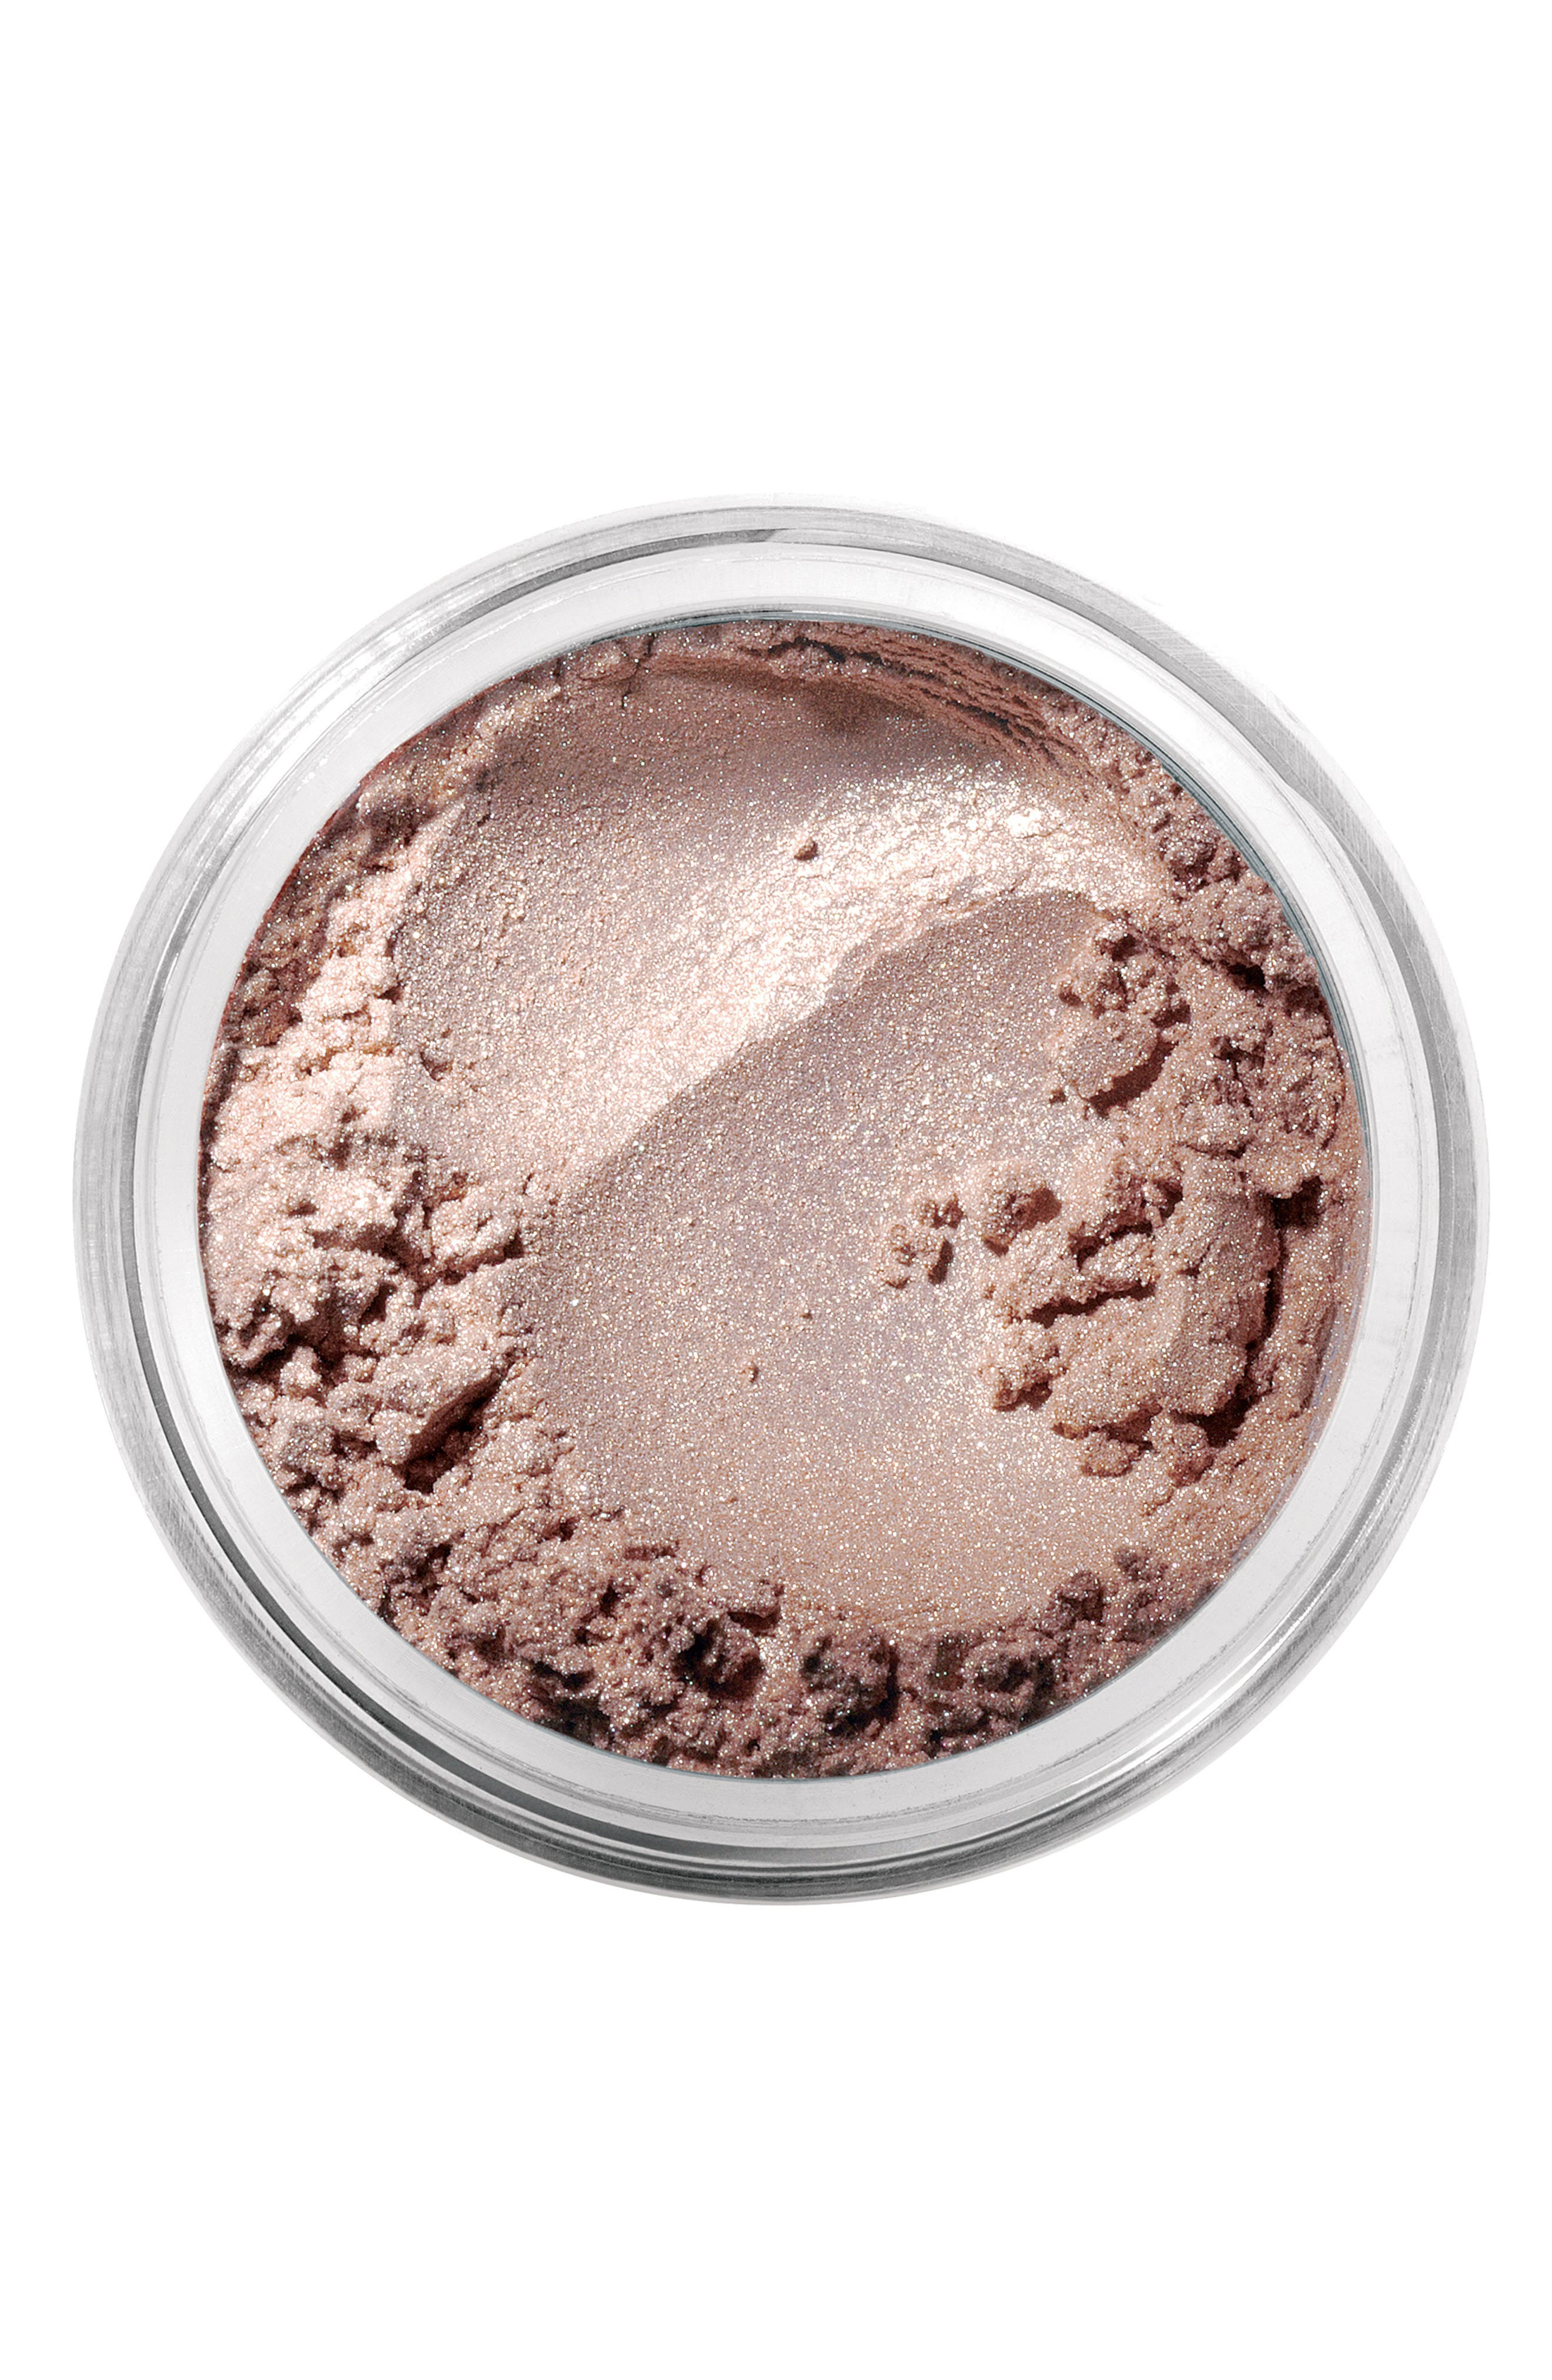 What it is: An incredibly creamy eyeshadow that\\\'s velvety smooth and unbelievably blendable. What it does: The vibrant, stay-true eyecolor won\\\'t smudge, run or fade. How to use: Tap a brush lightly into the eyeshadow and swipe it across the inside of the cap to remove any excess product. Starting at the inner corner of the lid, gently brush outward. Lightly contour your creases if desired, blending color upward and outward. Layer until you reach